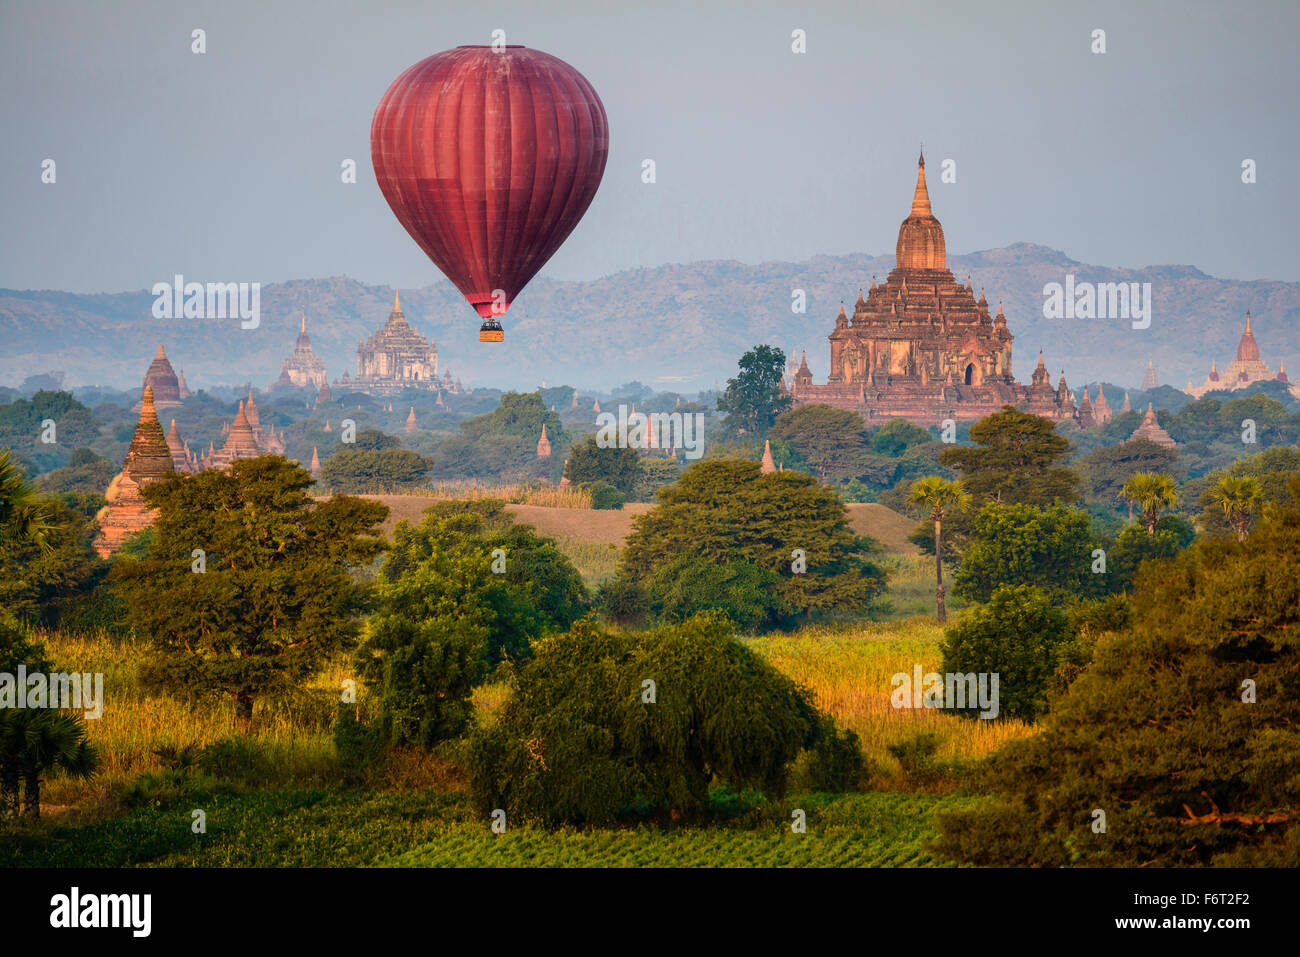 Hot air balloon flying over towers - Stock Image